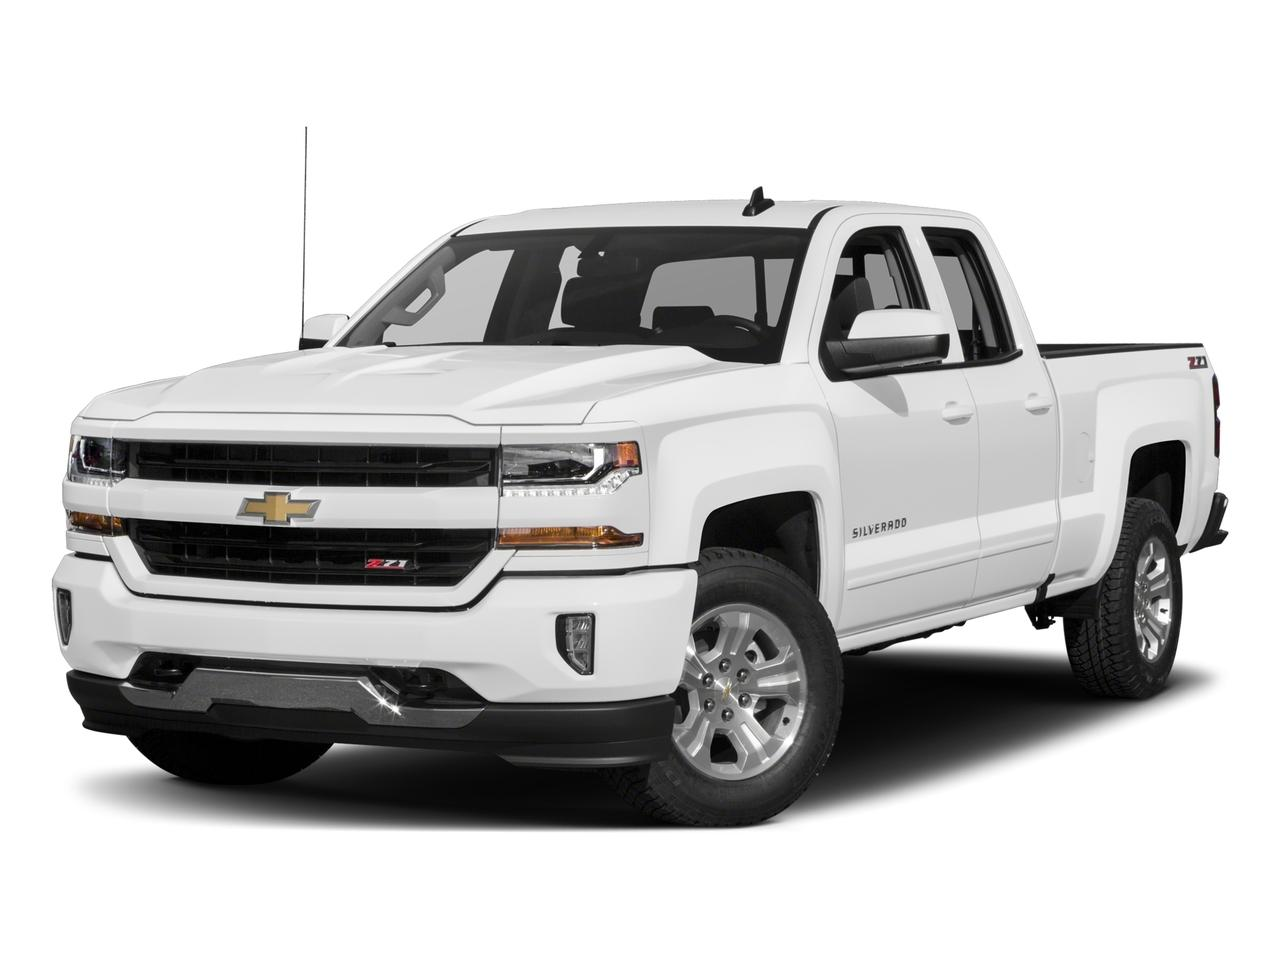 2018 Chevrolet Silverado 1500 Vehicle Photo in Nashua, NH 03060